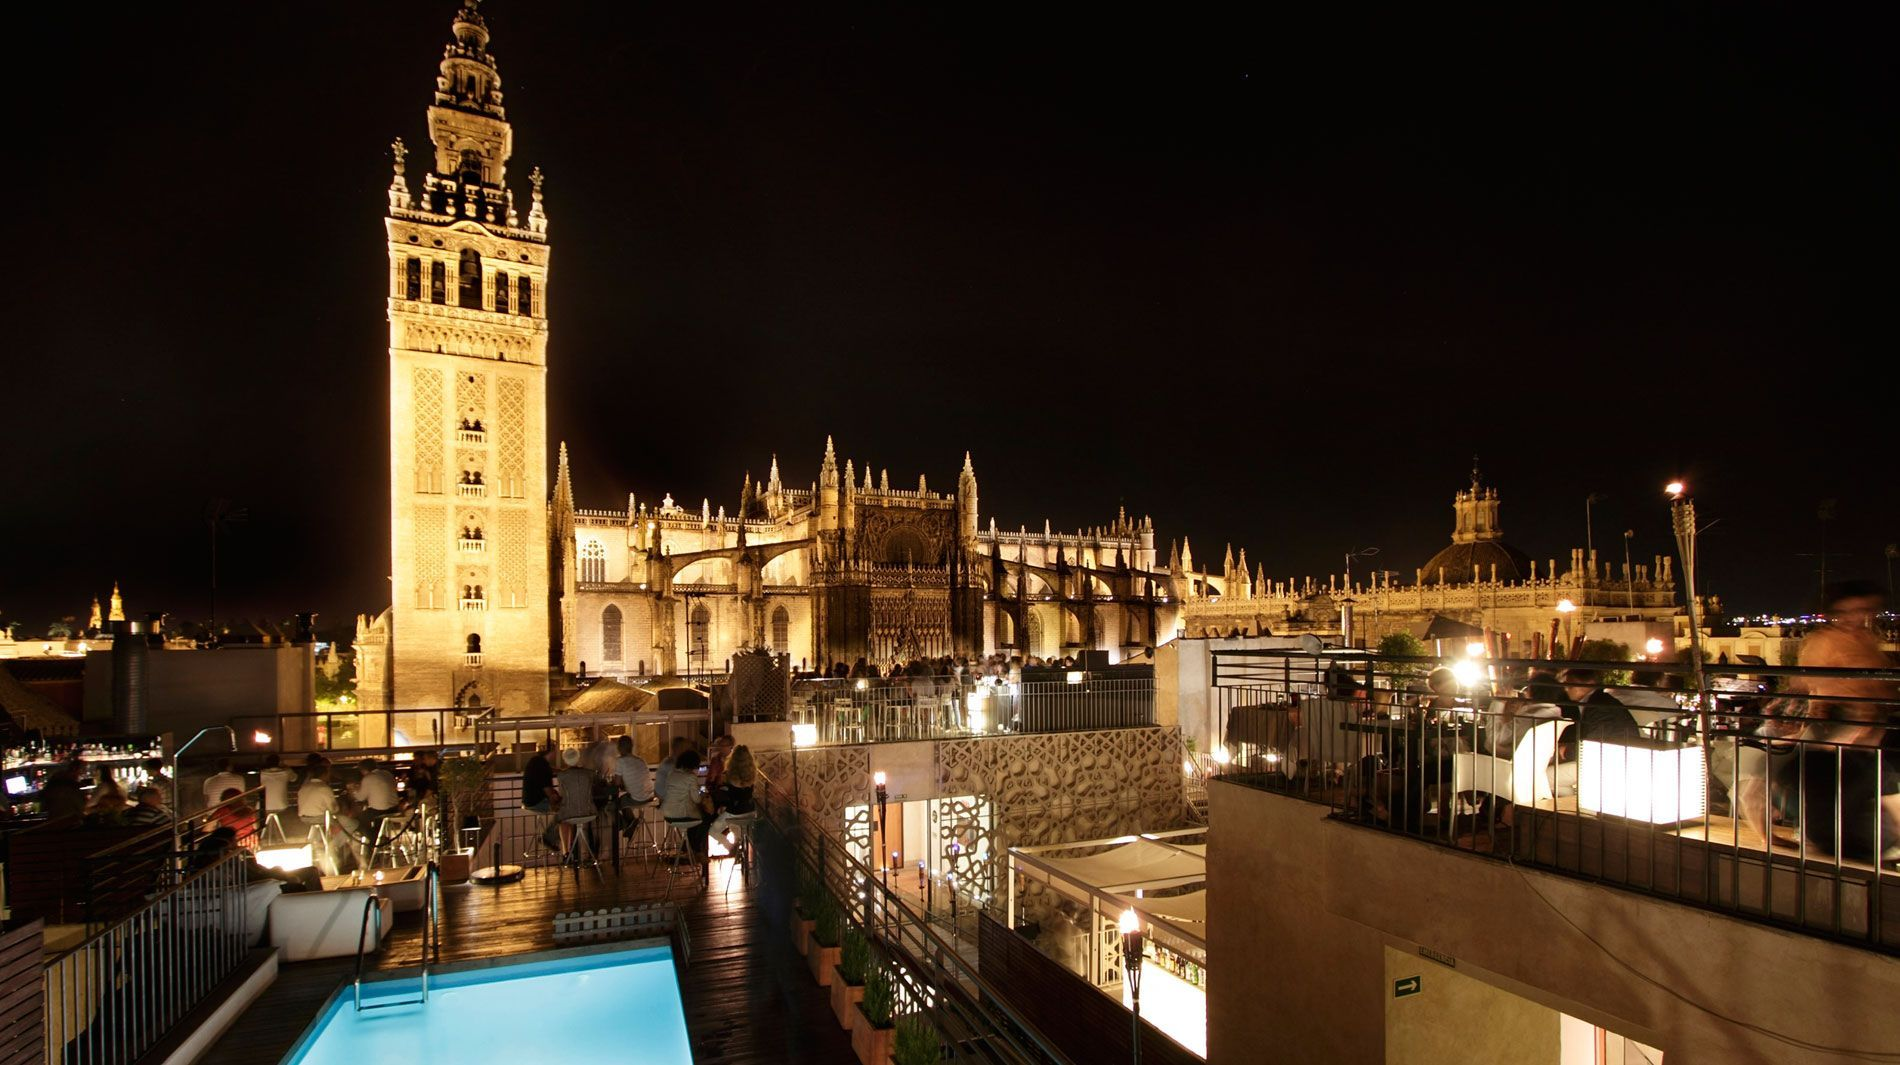 Eme Catedral Hotel Seville Rooftop Bar Hotels And Resorts Seville Hotel Best Boutique Hotels